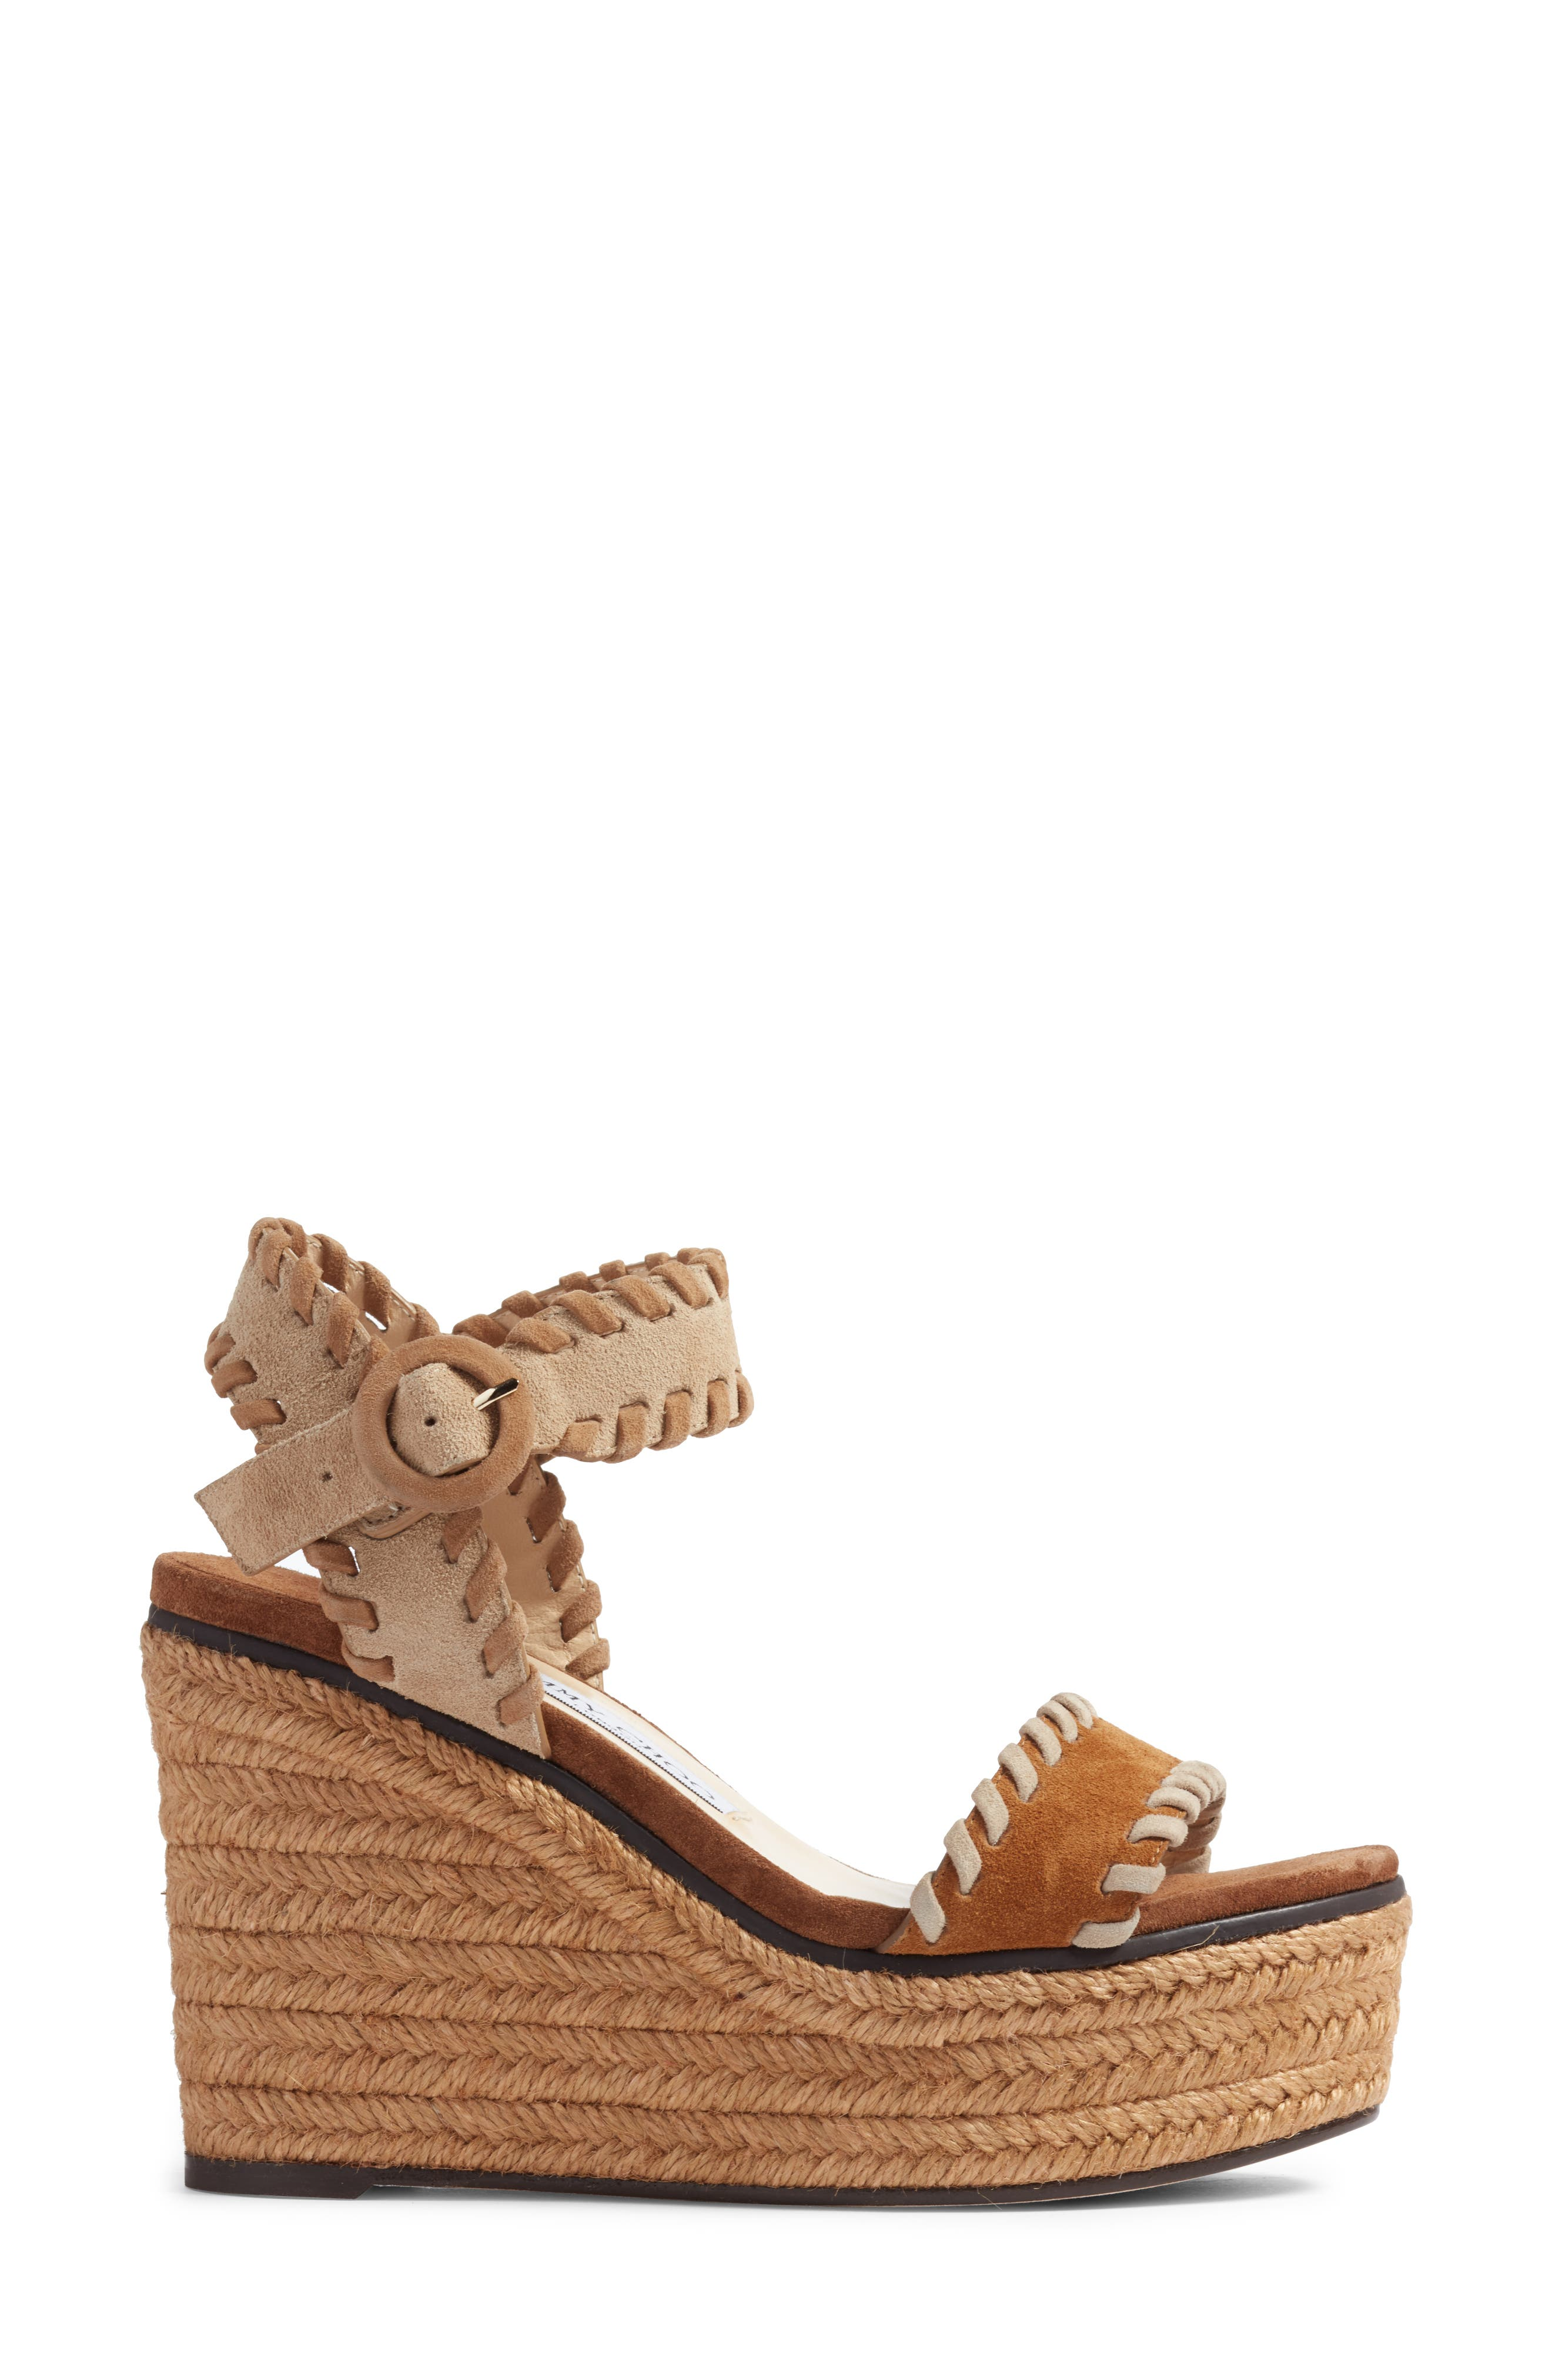 JIMMY CHOO, Abigail Whipstitch Wedge, Alternate thumbnail 3, color, NATURAL/ BROWN